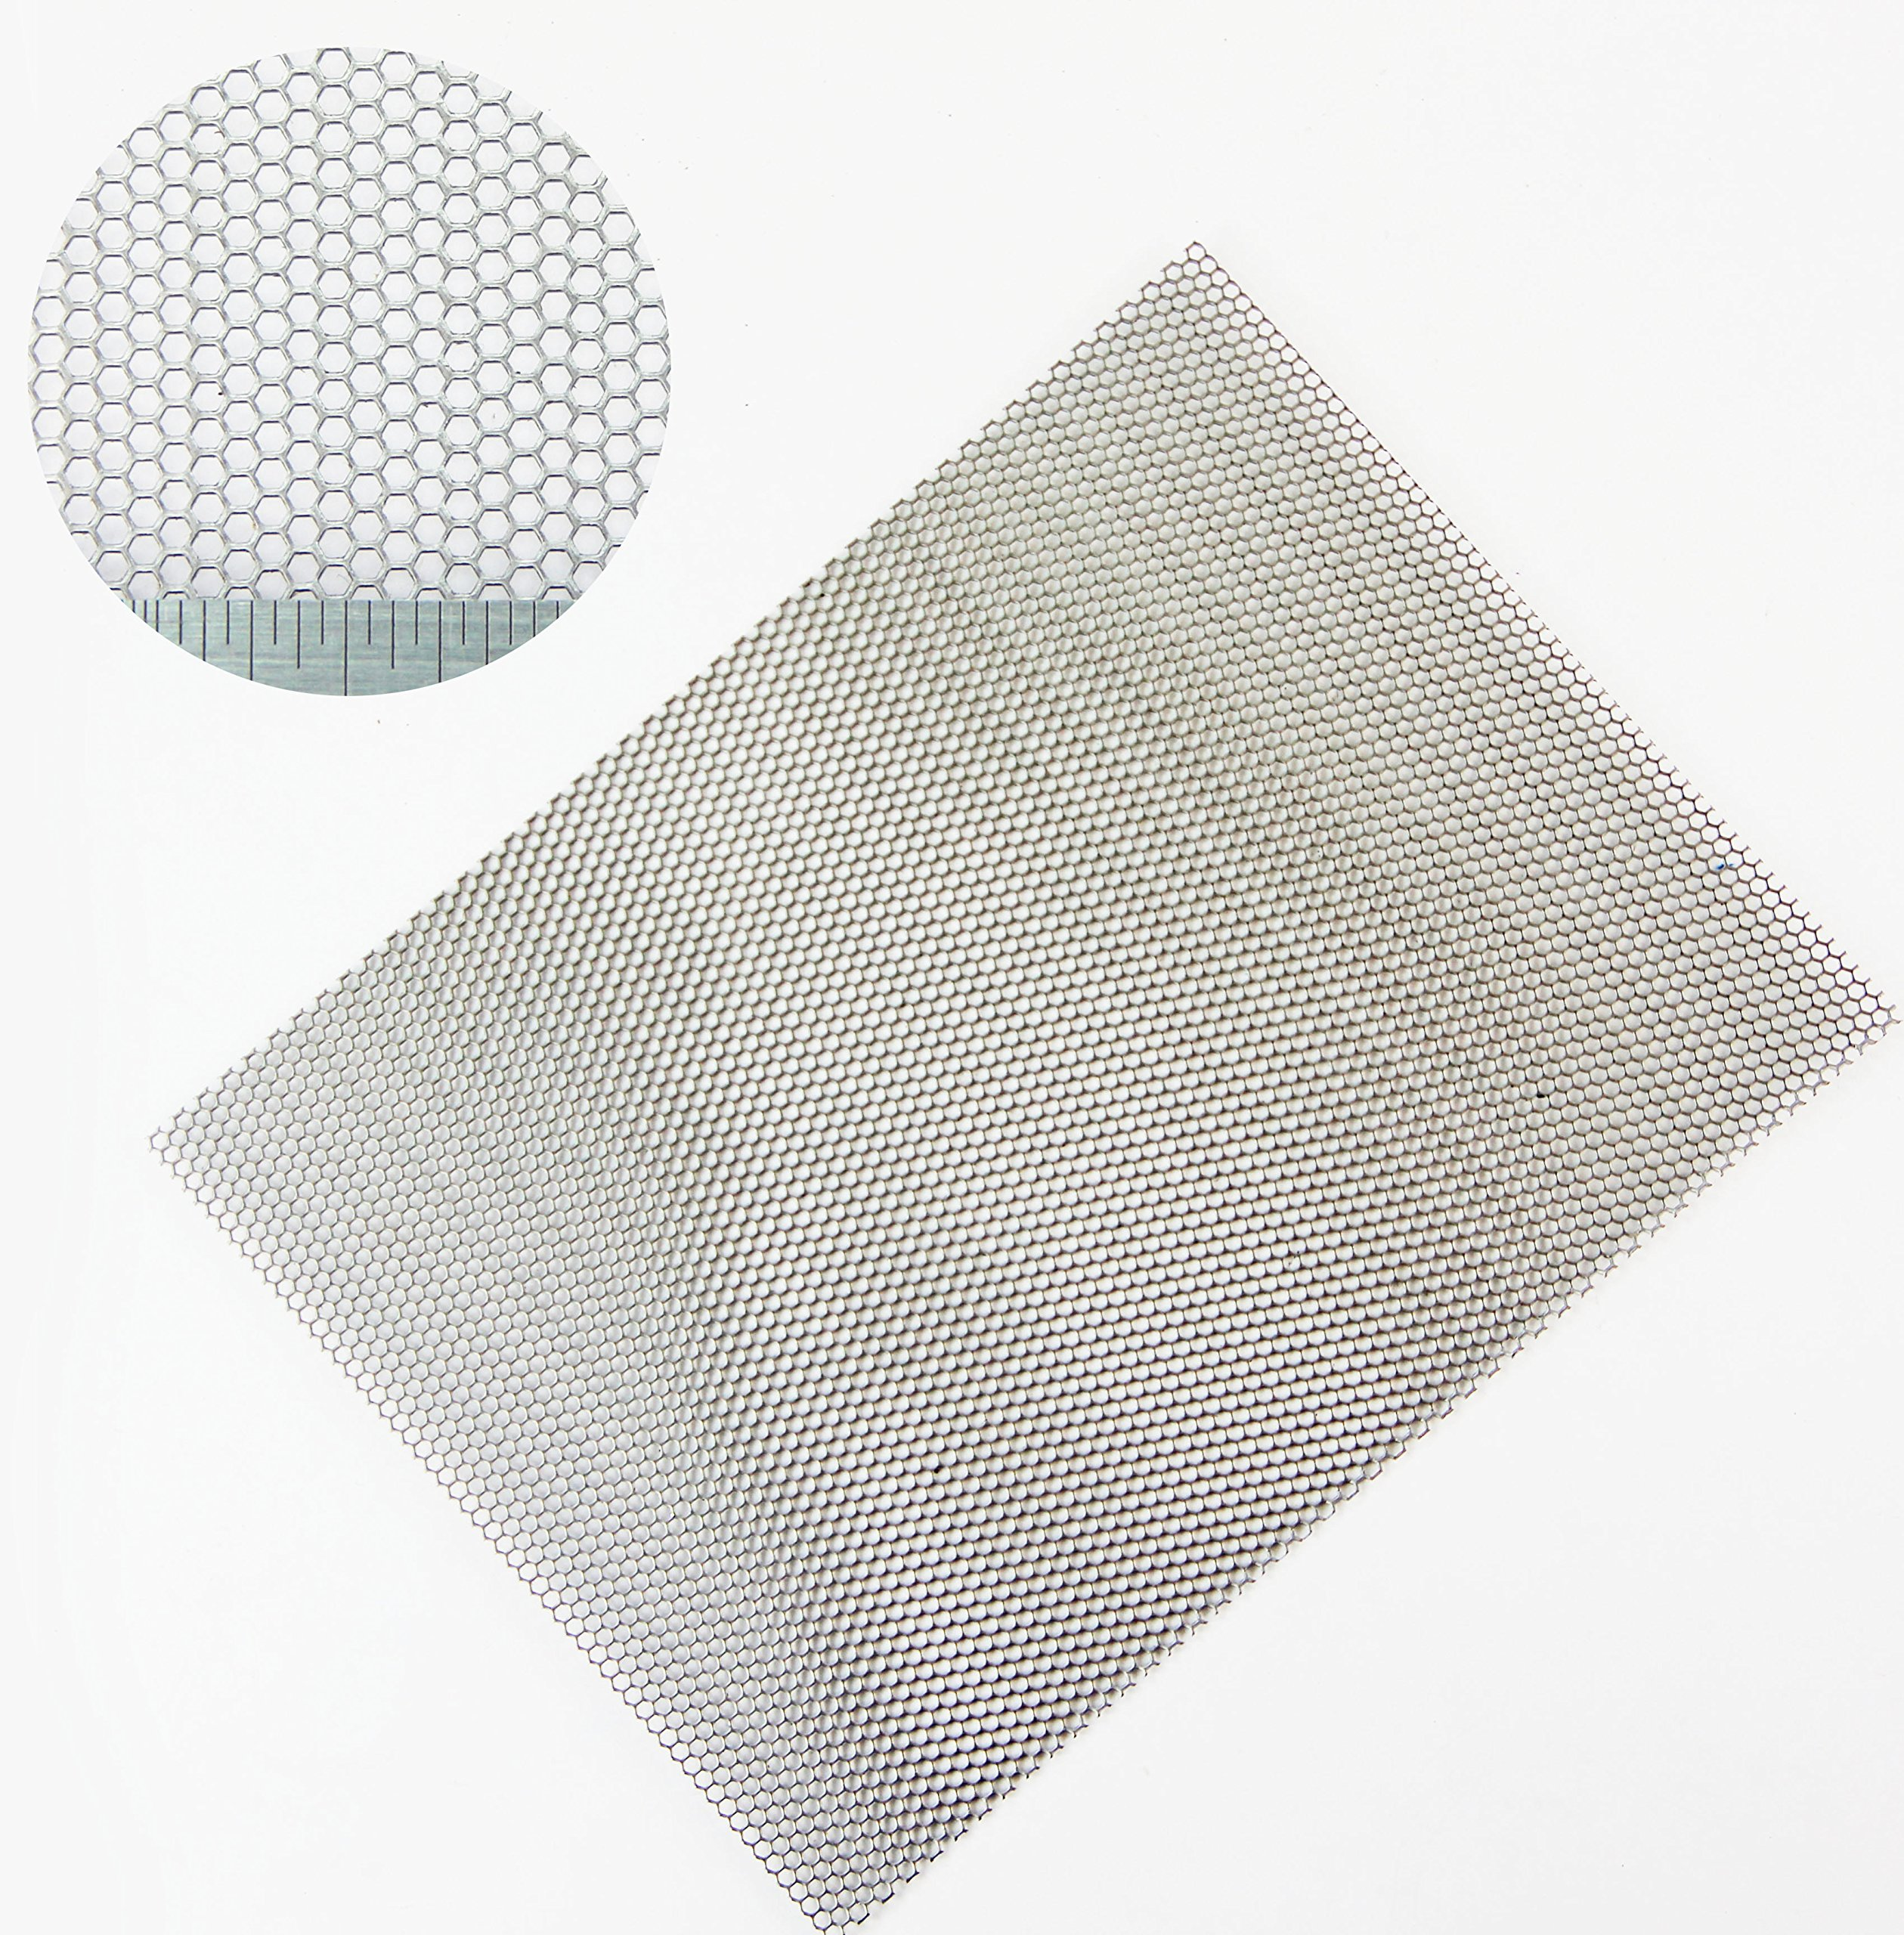 Hexagonal - Mild Steel-Perforated Mesh Sheet-2mm Hole-2.5mm Pitch-1mm Thickness - 1000 x 500mm Sheet by The Mesh Company